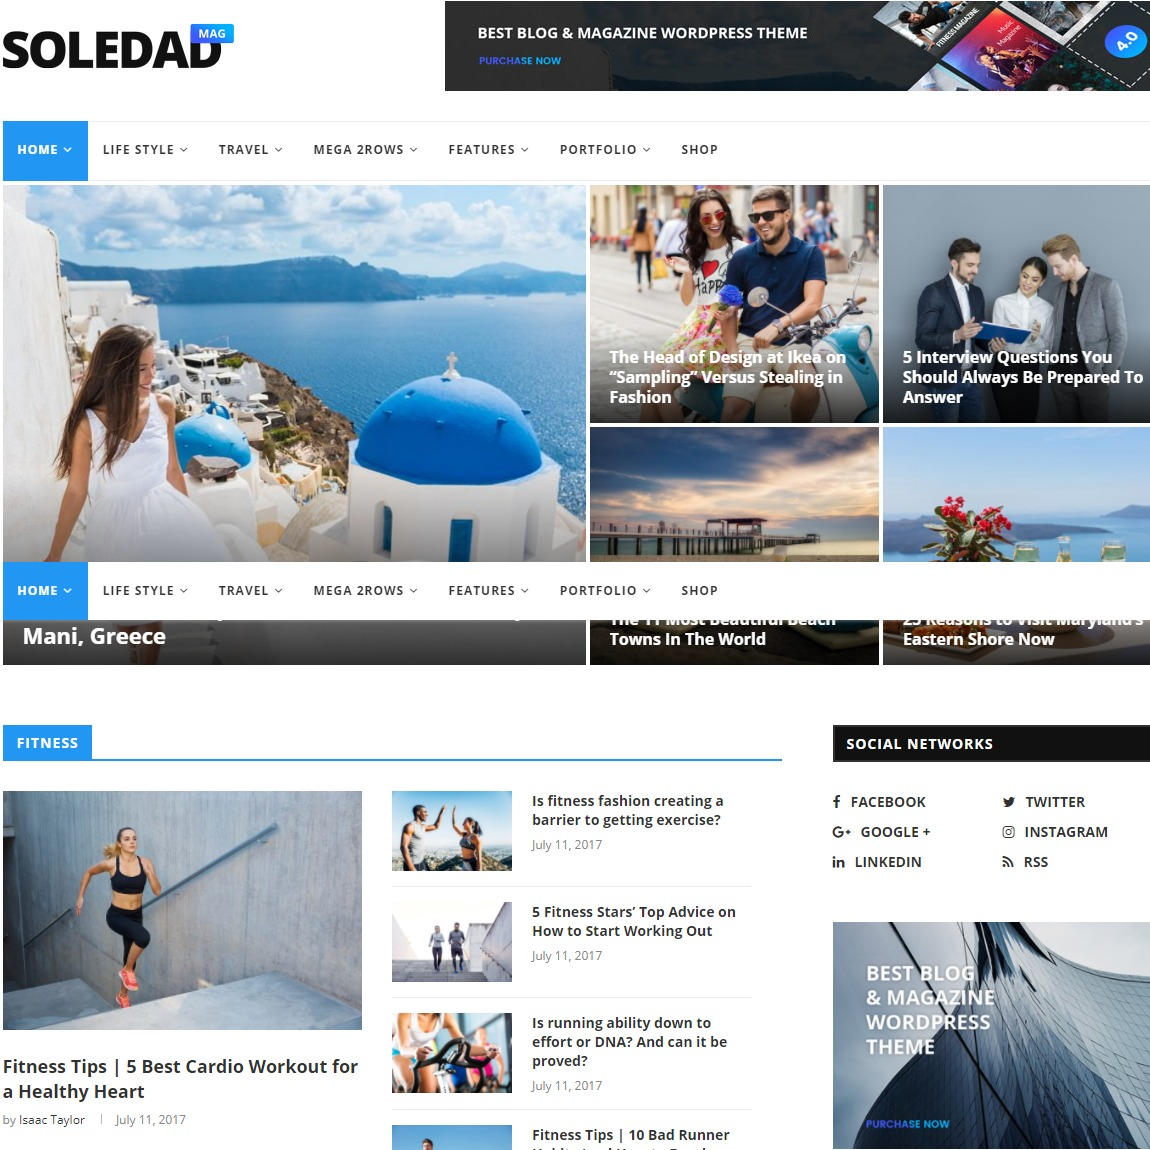 soledad-customizable-wp-theme